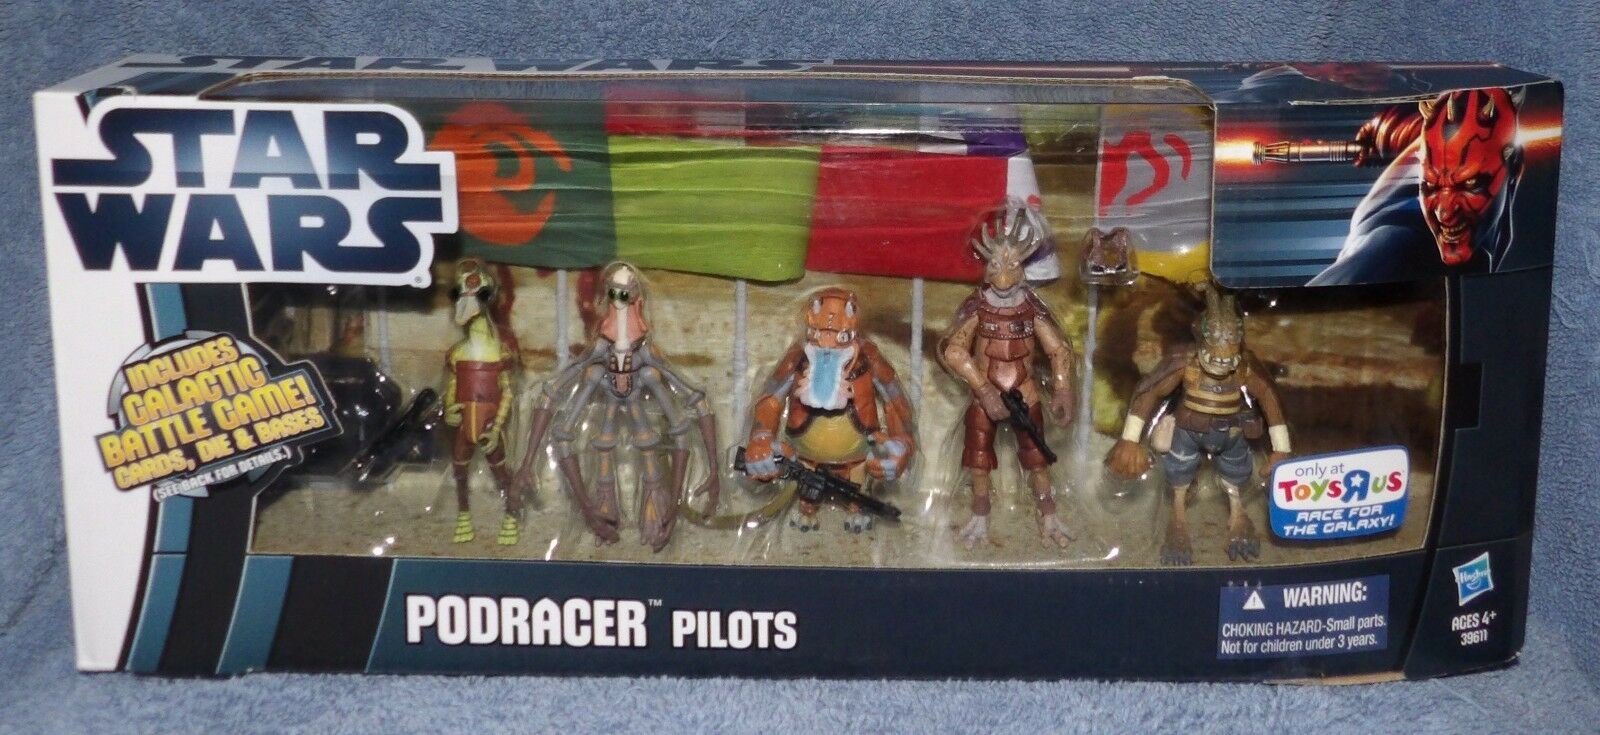 STAR WARS PODRACER PILOTS SET TOYS R US EXCLUSIVE WITH GALACTIC BATTLE CARDS